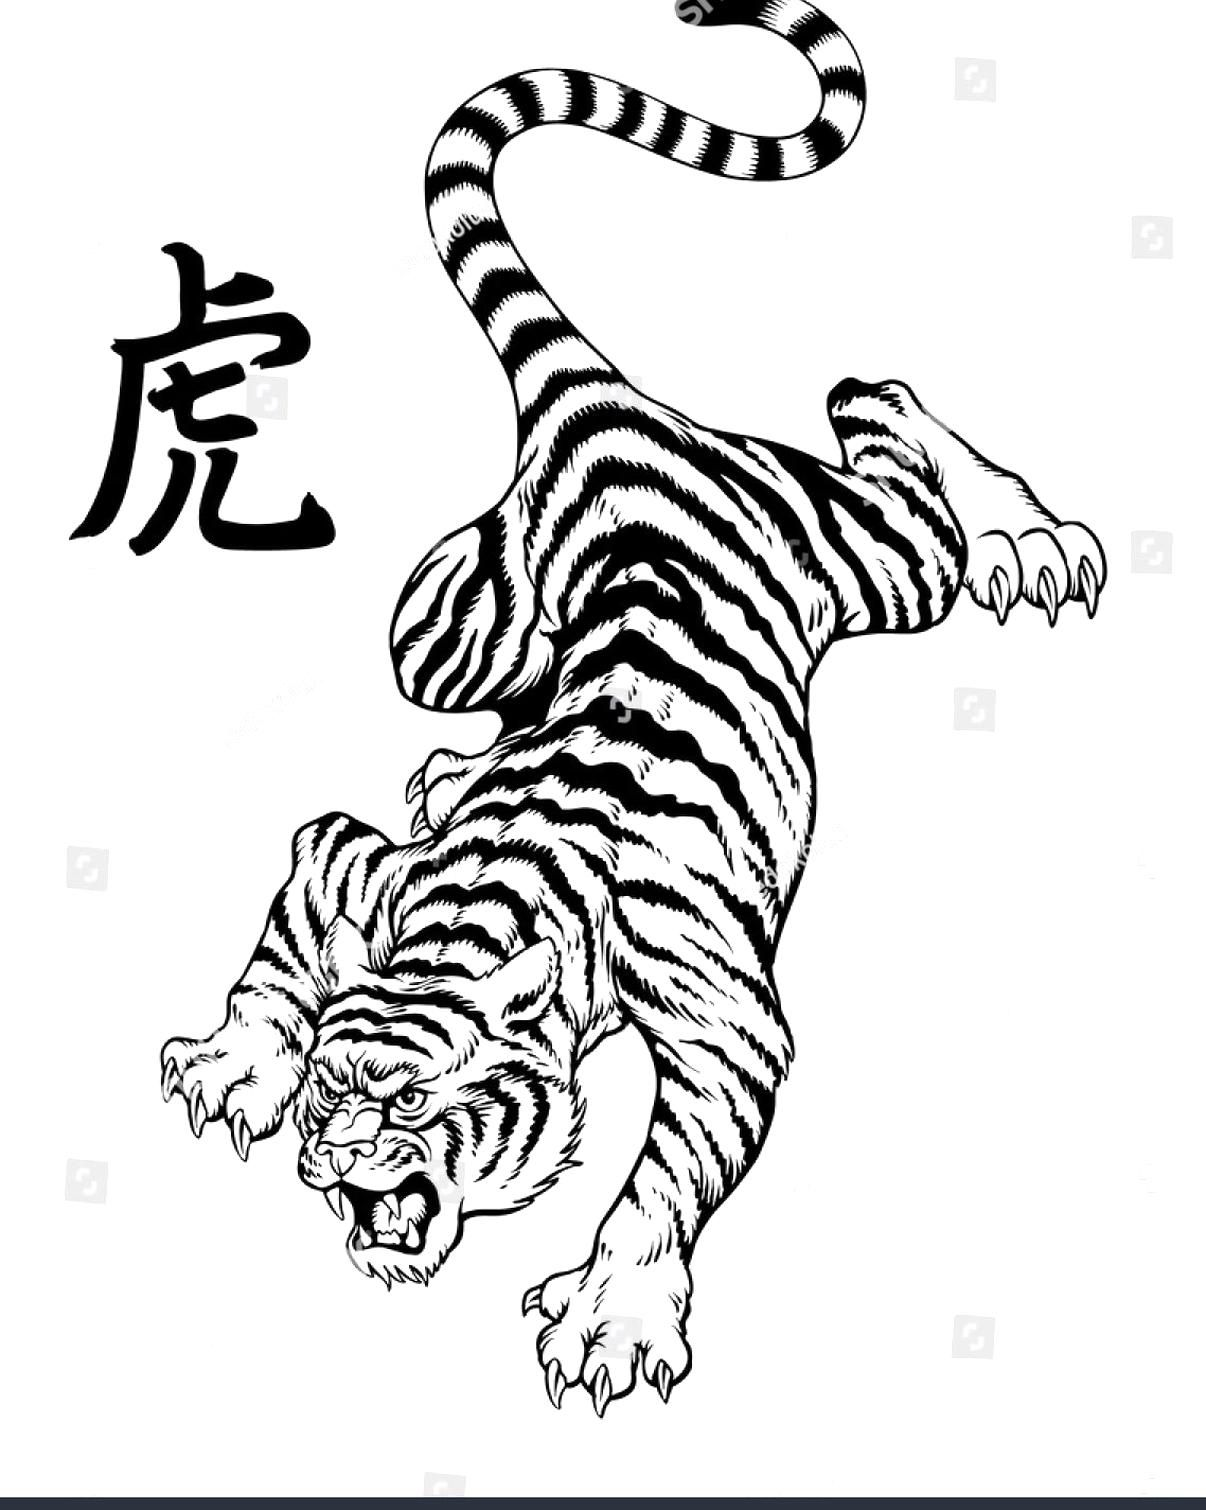 Tiger Tattoo Black White Vector Illustration Stock Vector Royalty Free 1196224861 In 2020 Japanese Tiger Tattoo Tiger Tattoo Images Tiger Tattoo Design